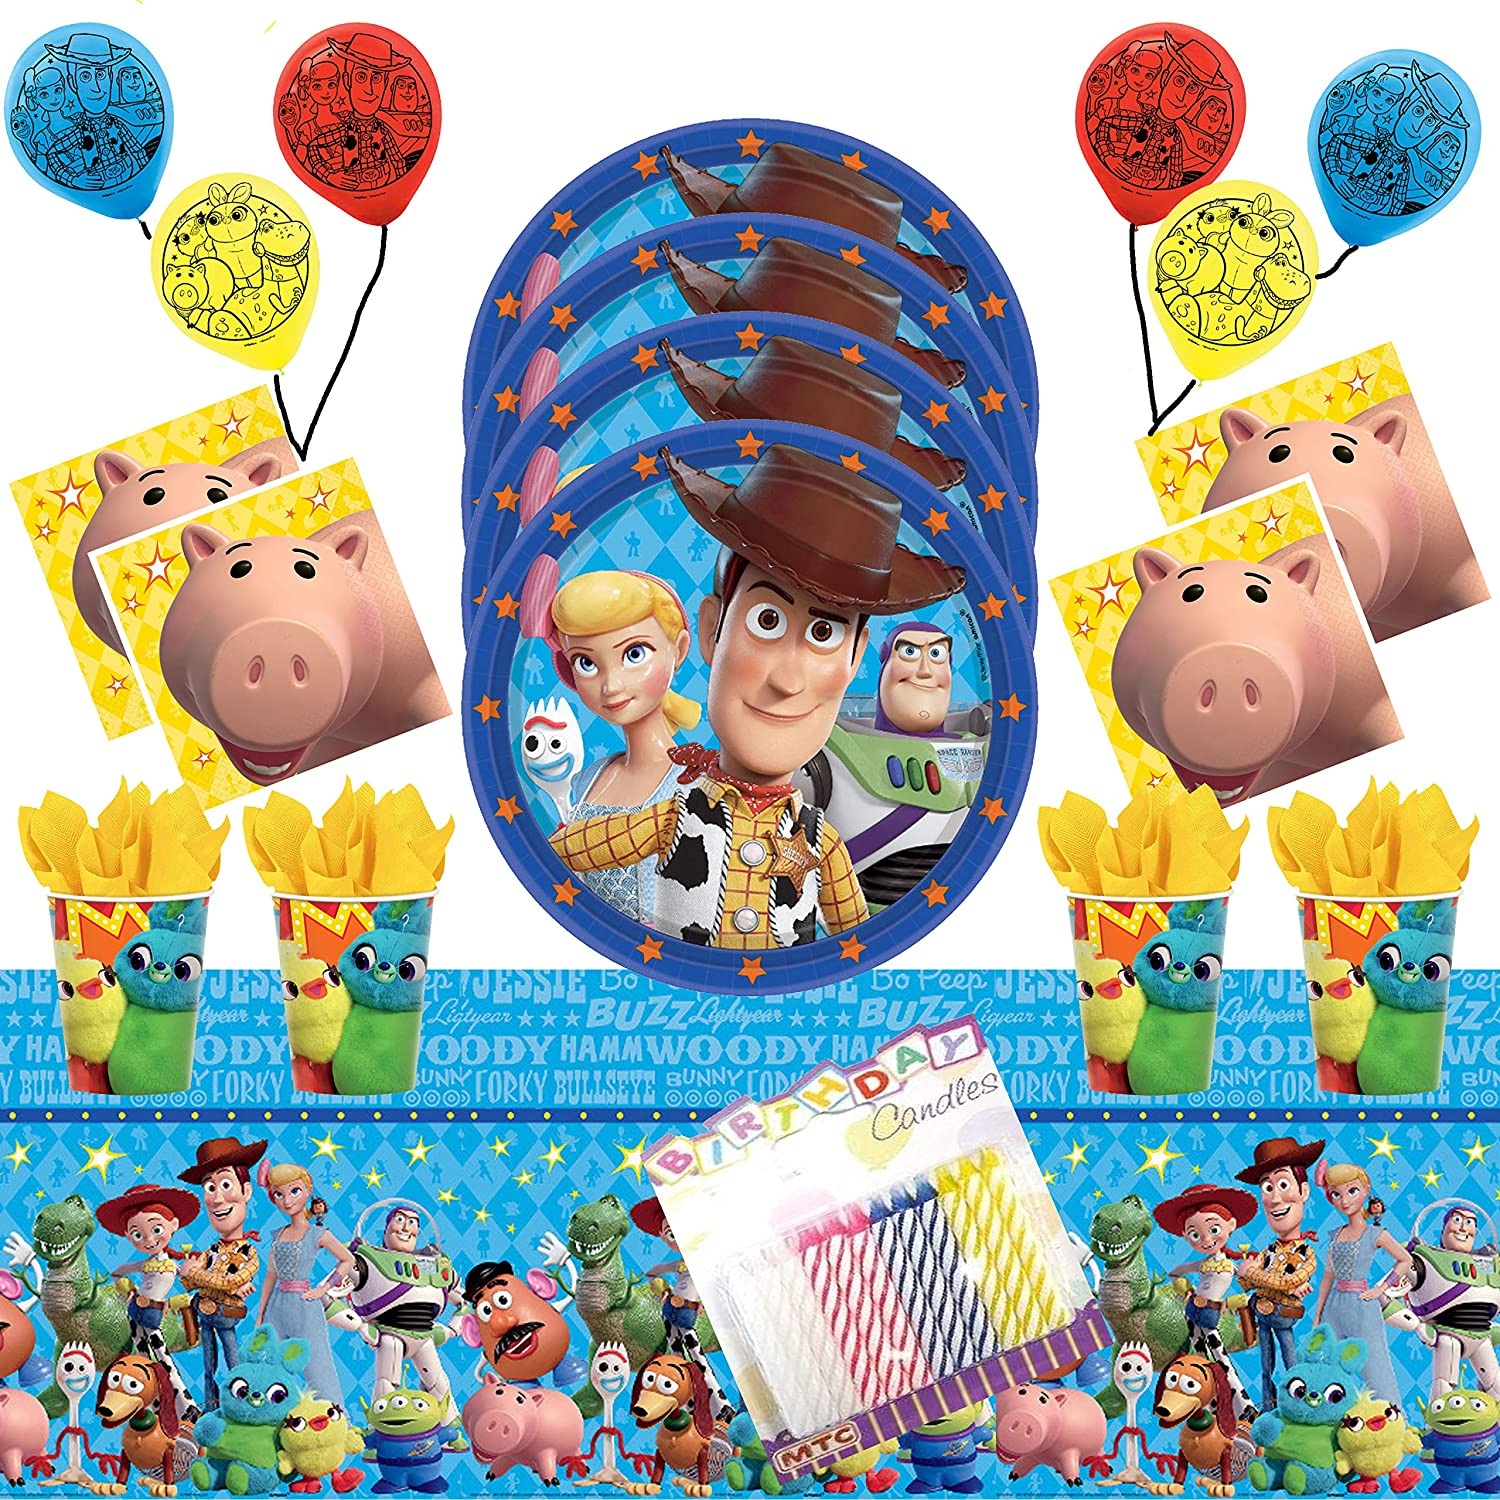 Toy Story 4 Party Supplies Pack Serves 16: Plates Napkins Cups Table Cover and Balloons with Birthday Candles (Bundle for 16)